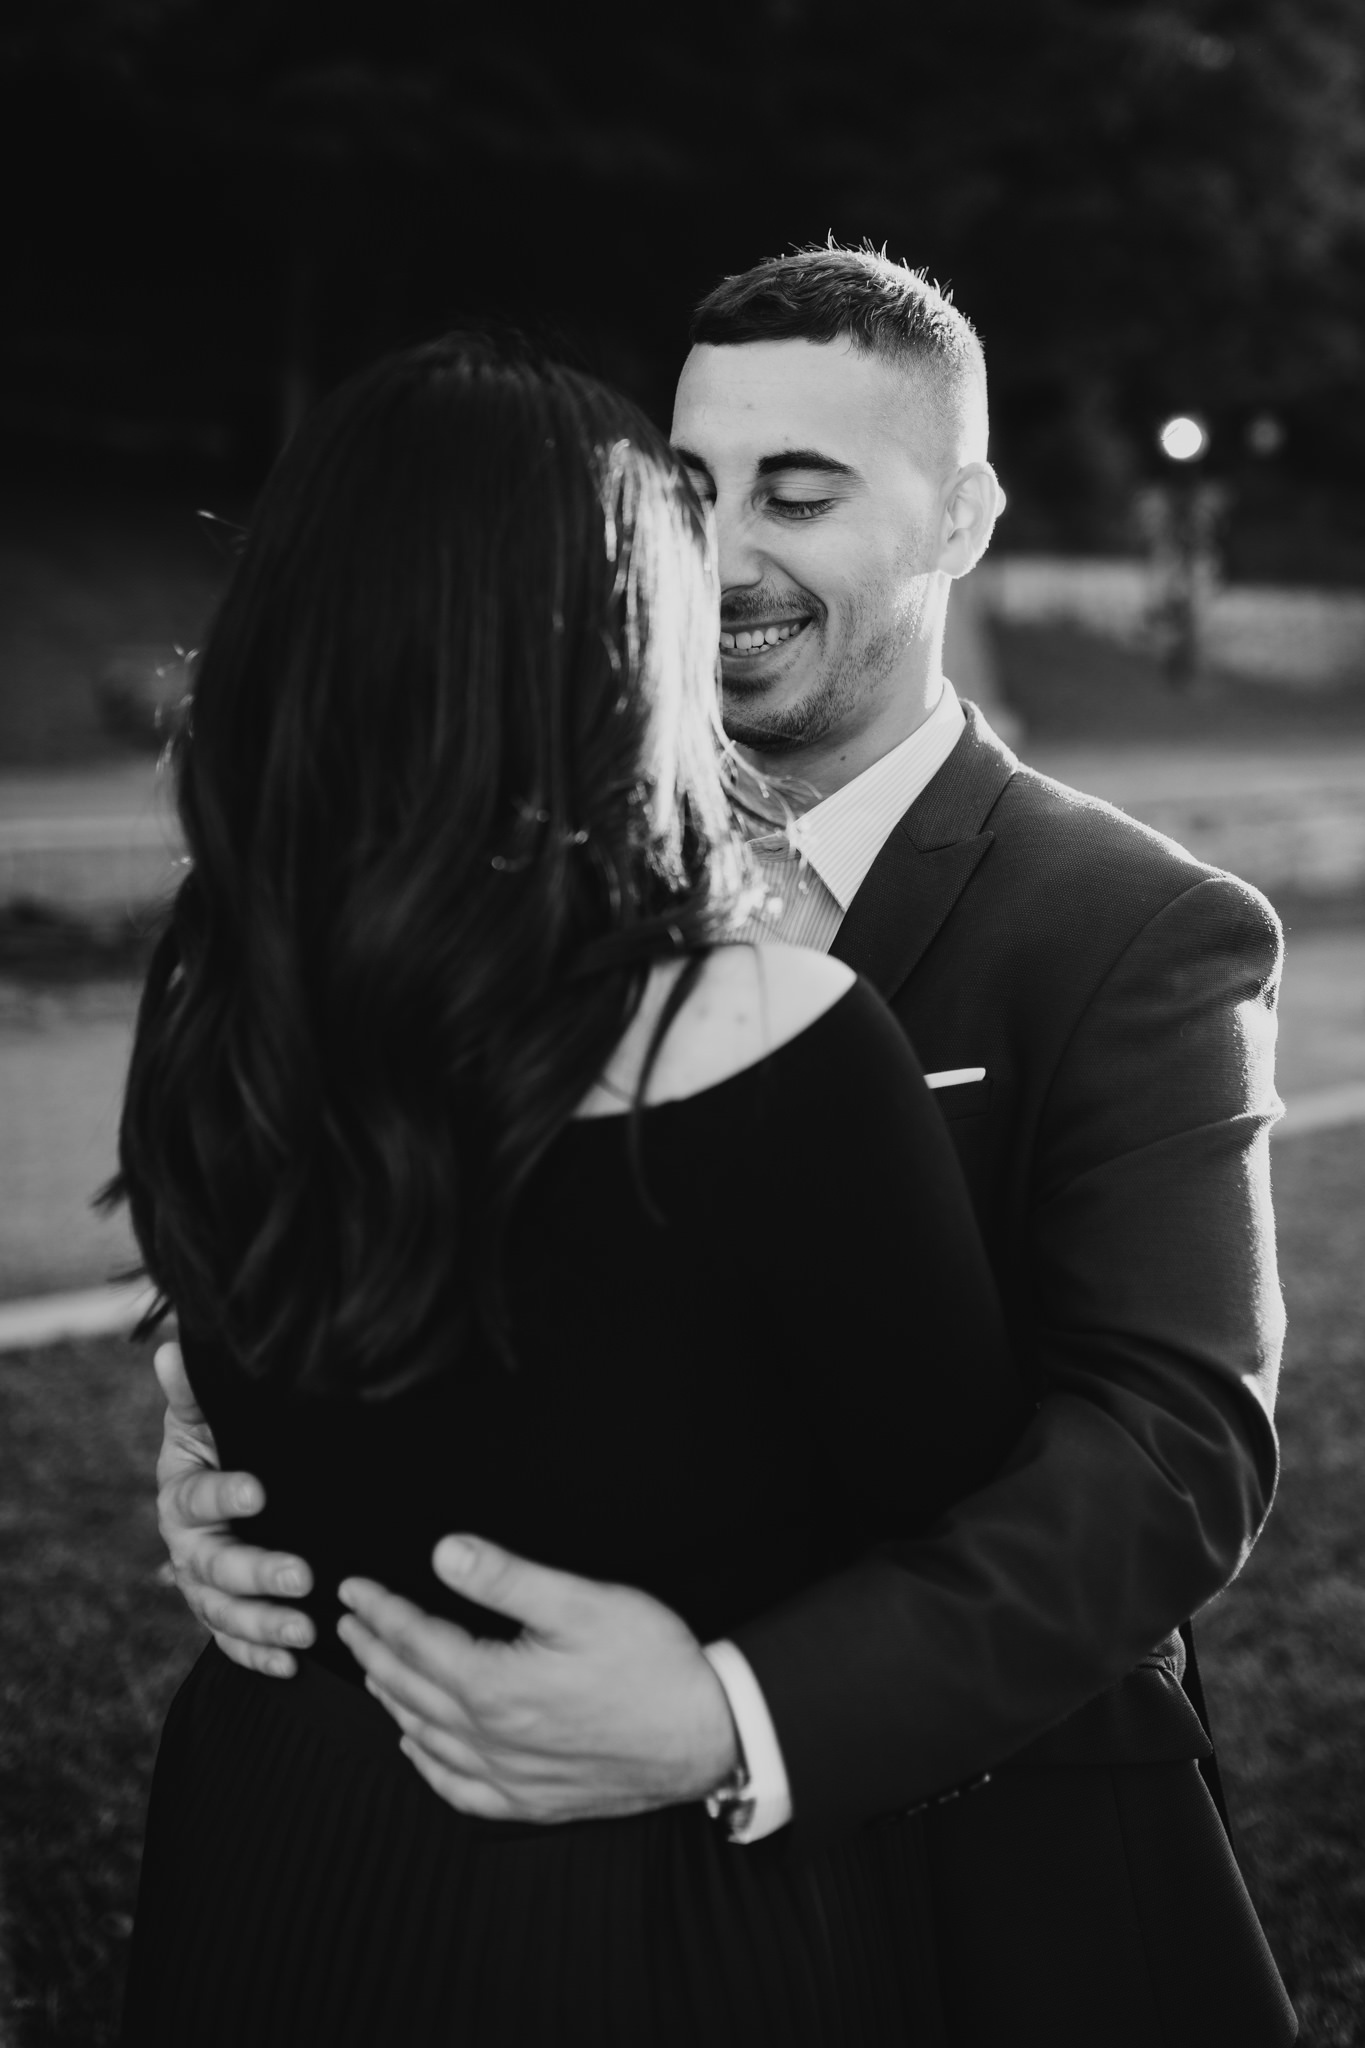 Classy, romantic, moody wedding and engagement portraiture